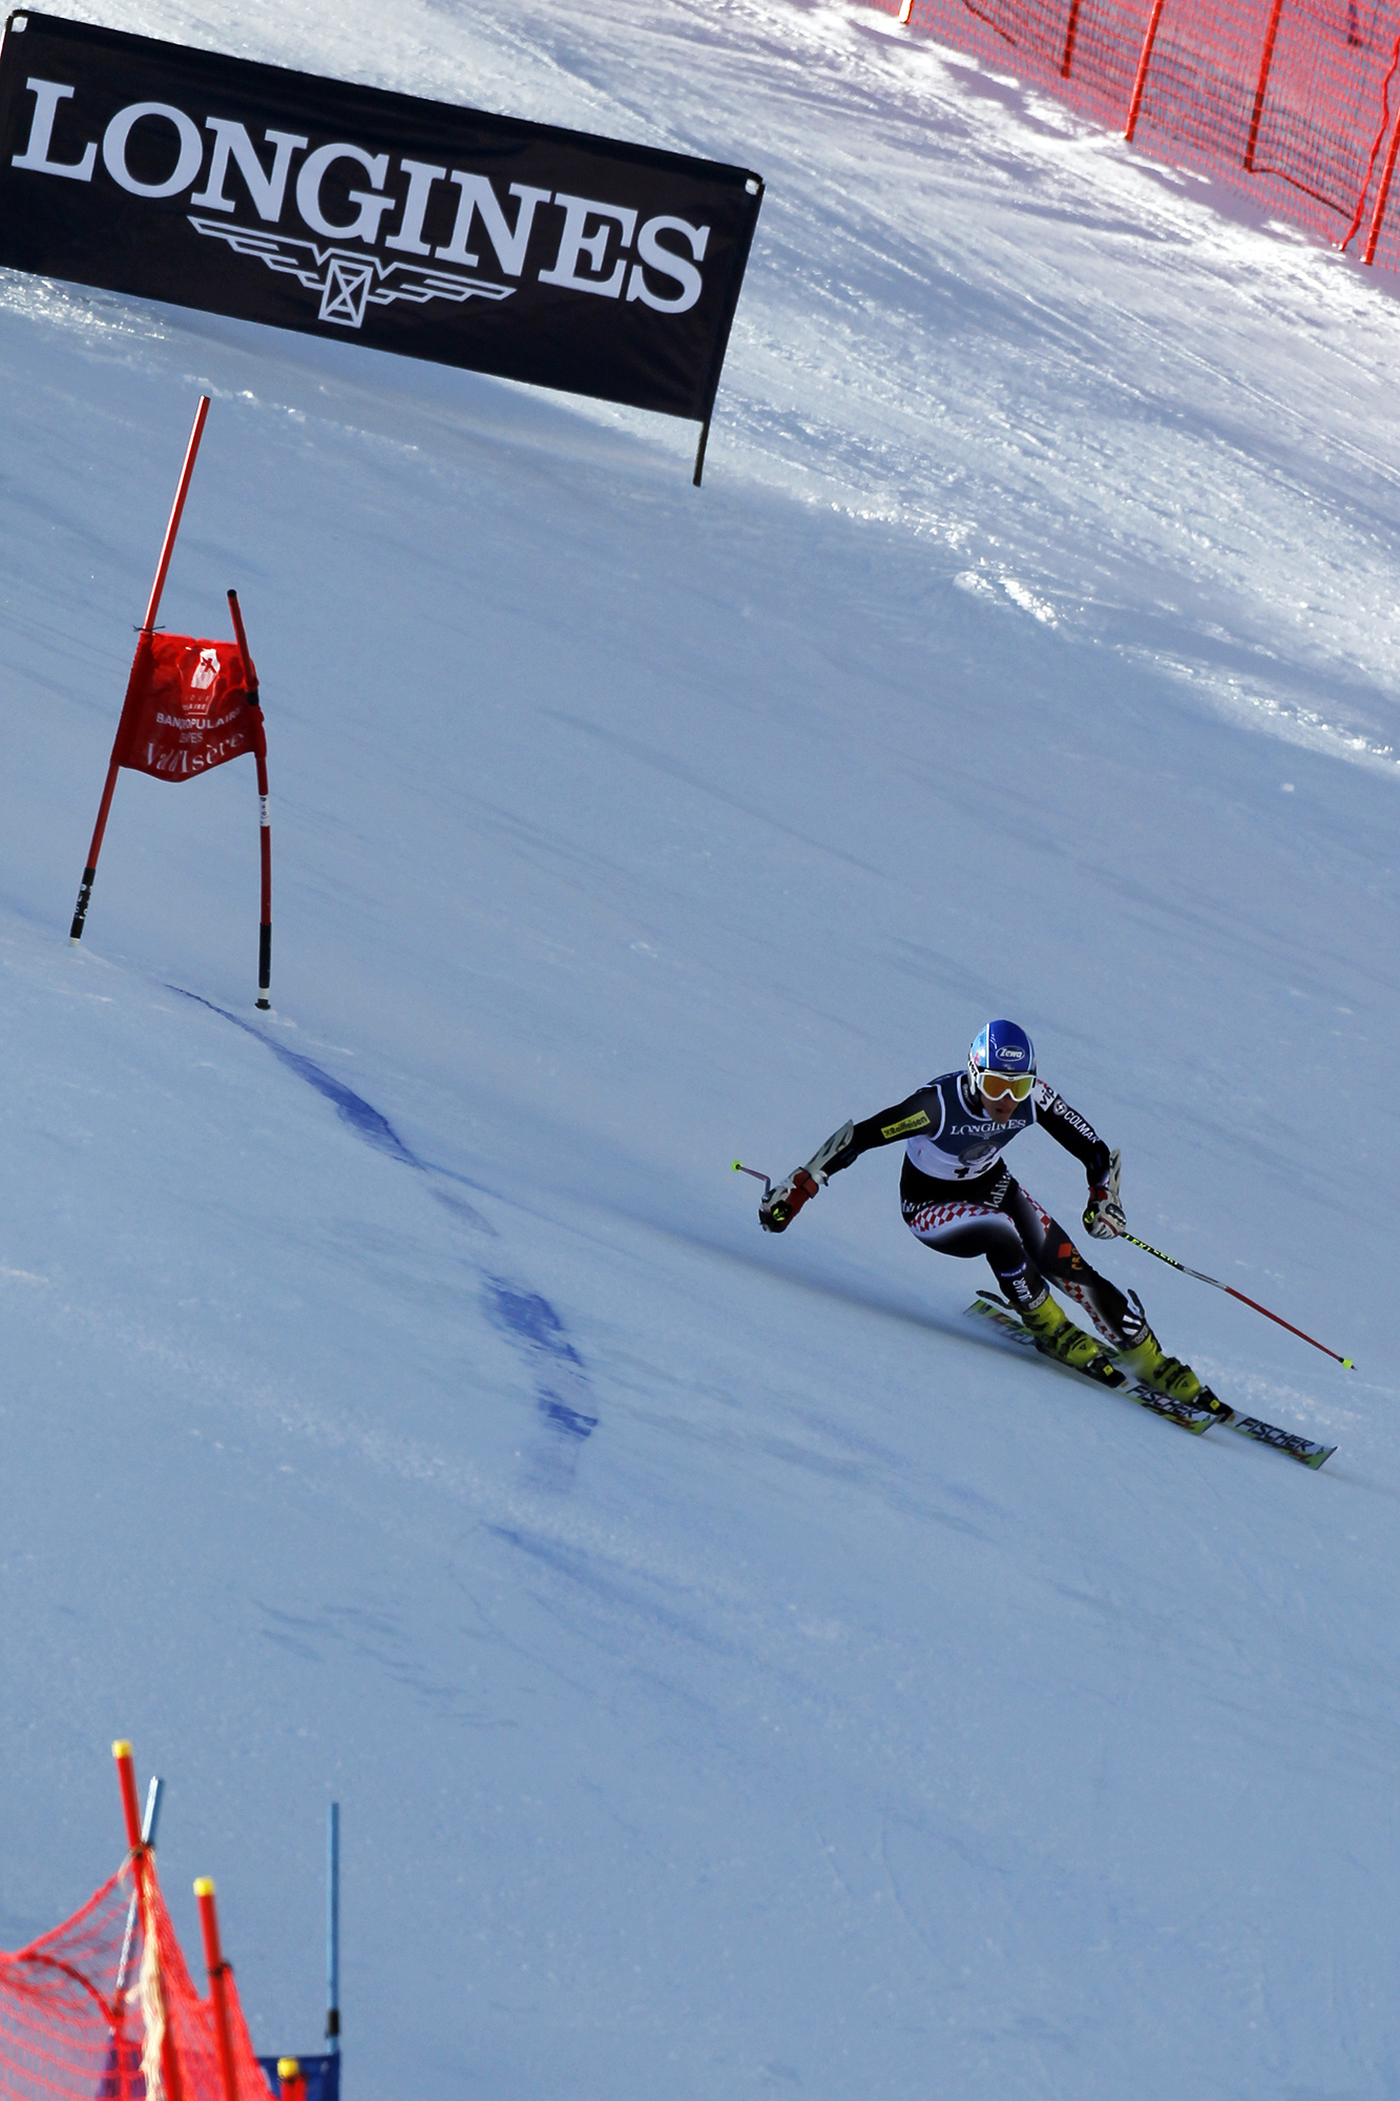 Longines Alpine Skiing Event: The Longines Future Ski Champion 2013 4